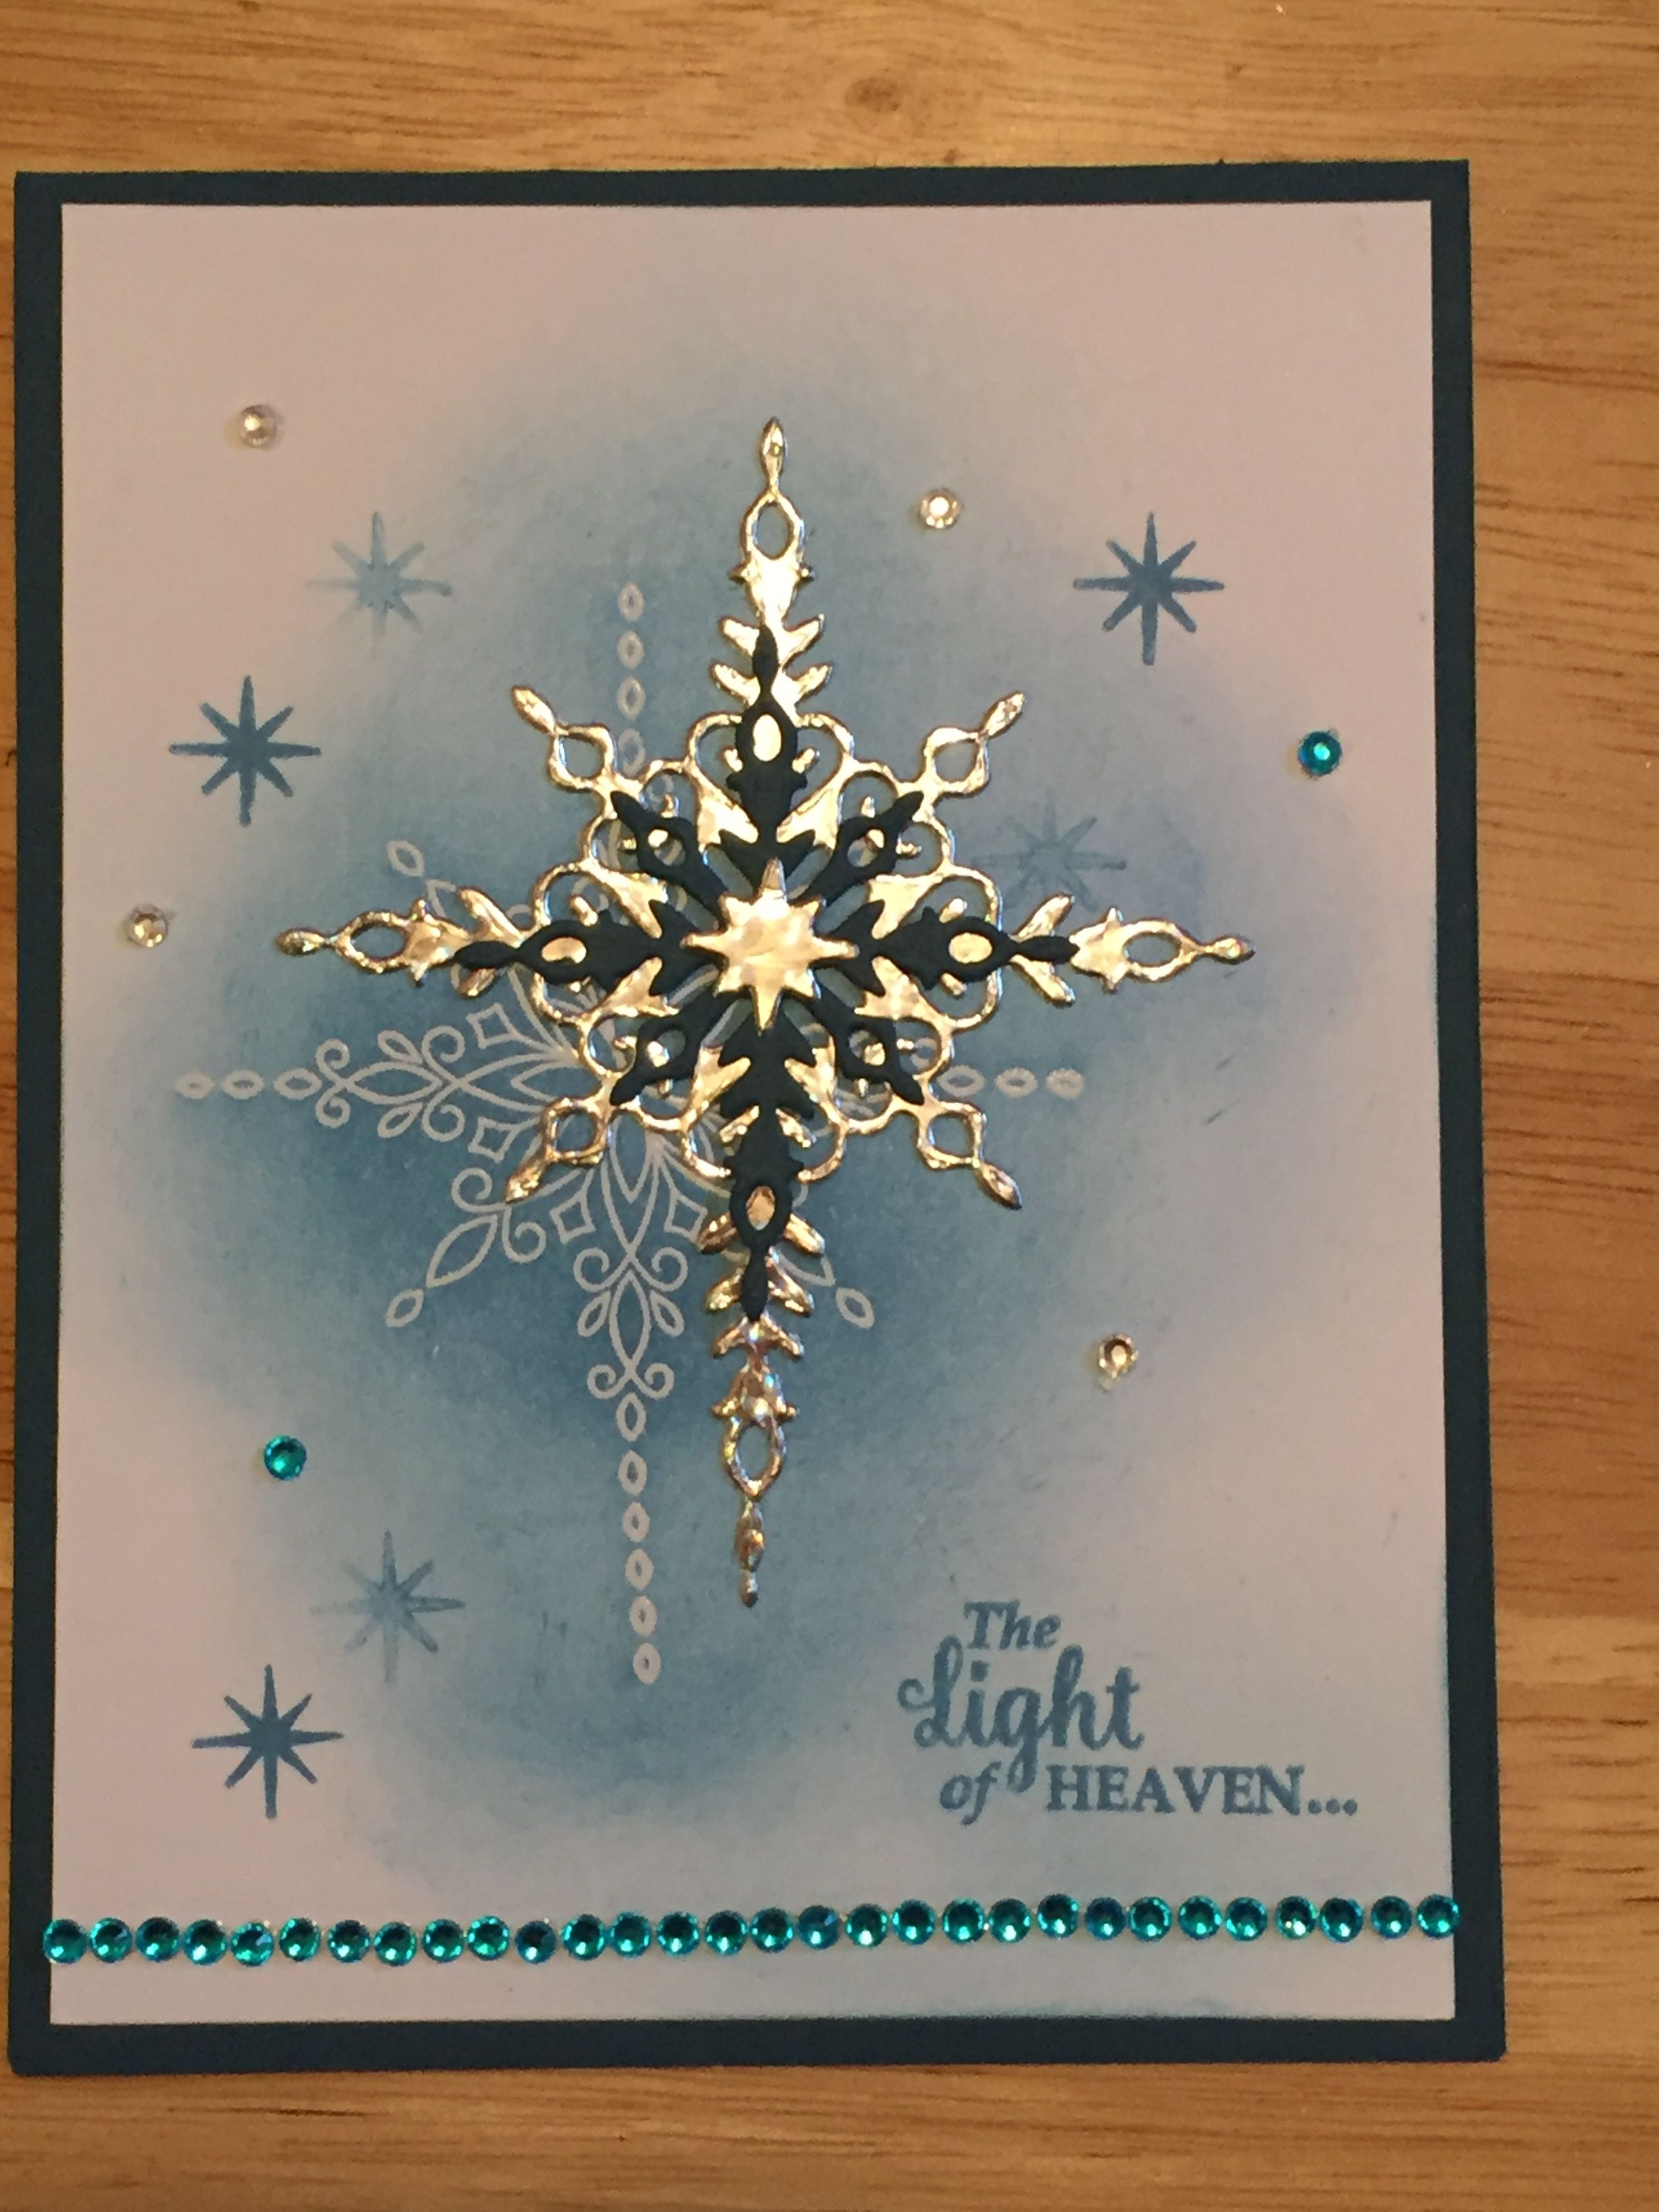 Pin by marilyn kelly on stampin up 17 pinterest card ideas bright star christmas cards card crafts greeting cards scrapbook card ideas friendship scrapbooking kristyandbryce Images